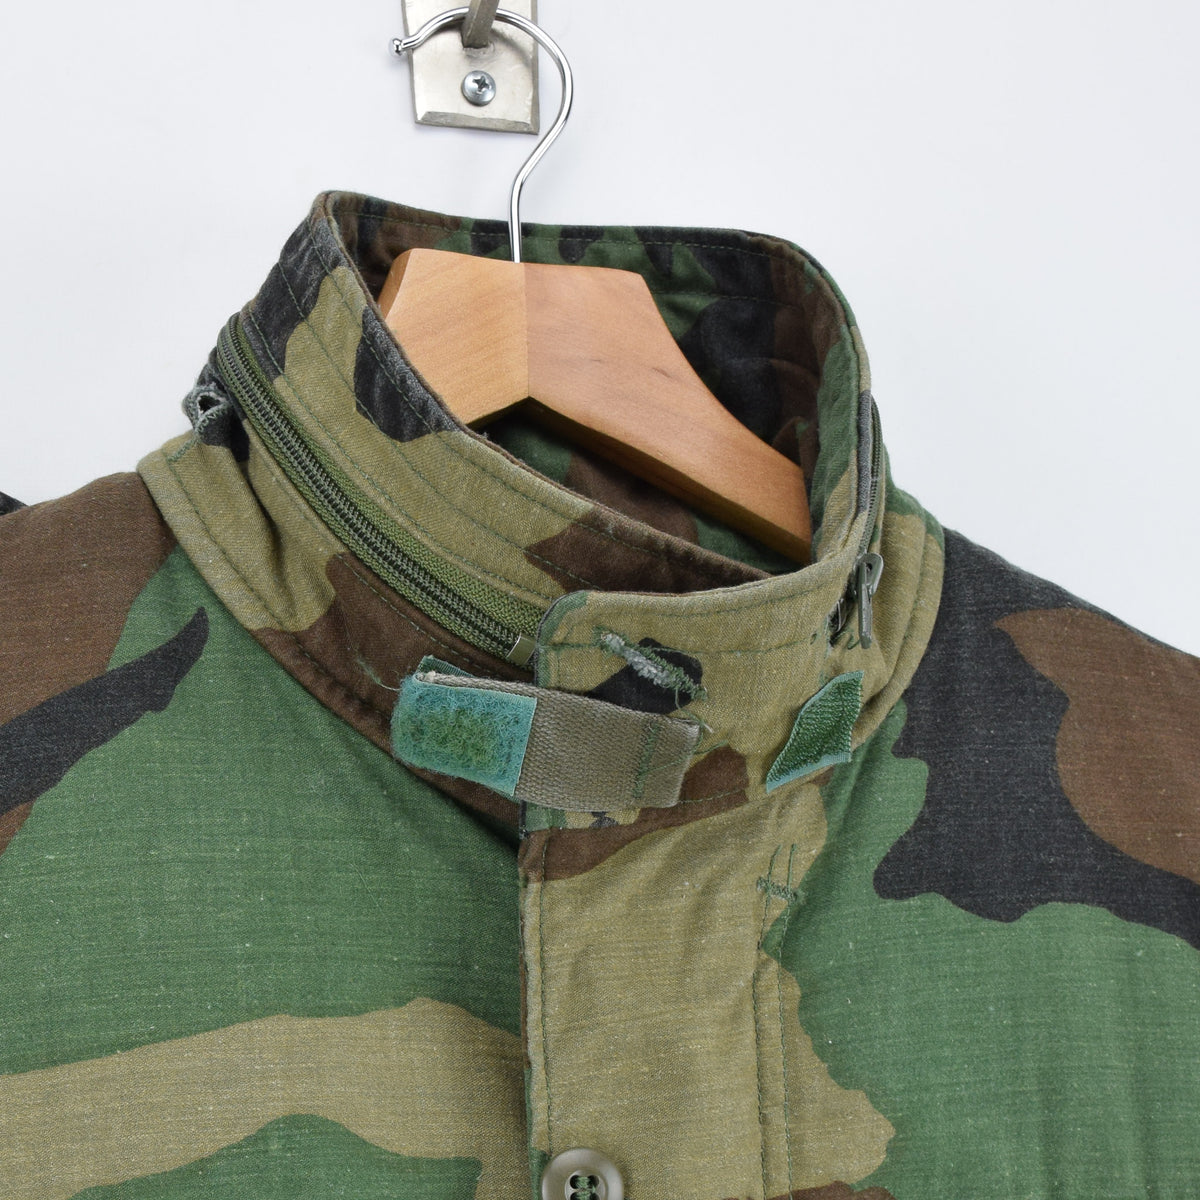 Vintage 80s M-65 Woodland Camouflage Field Coat Military US Air Force Jacket M collar